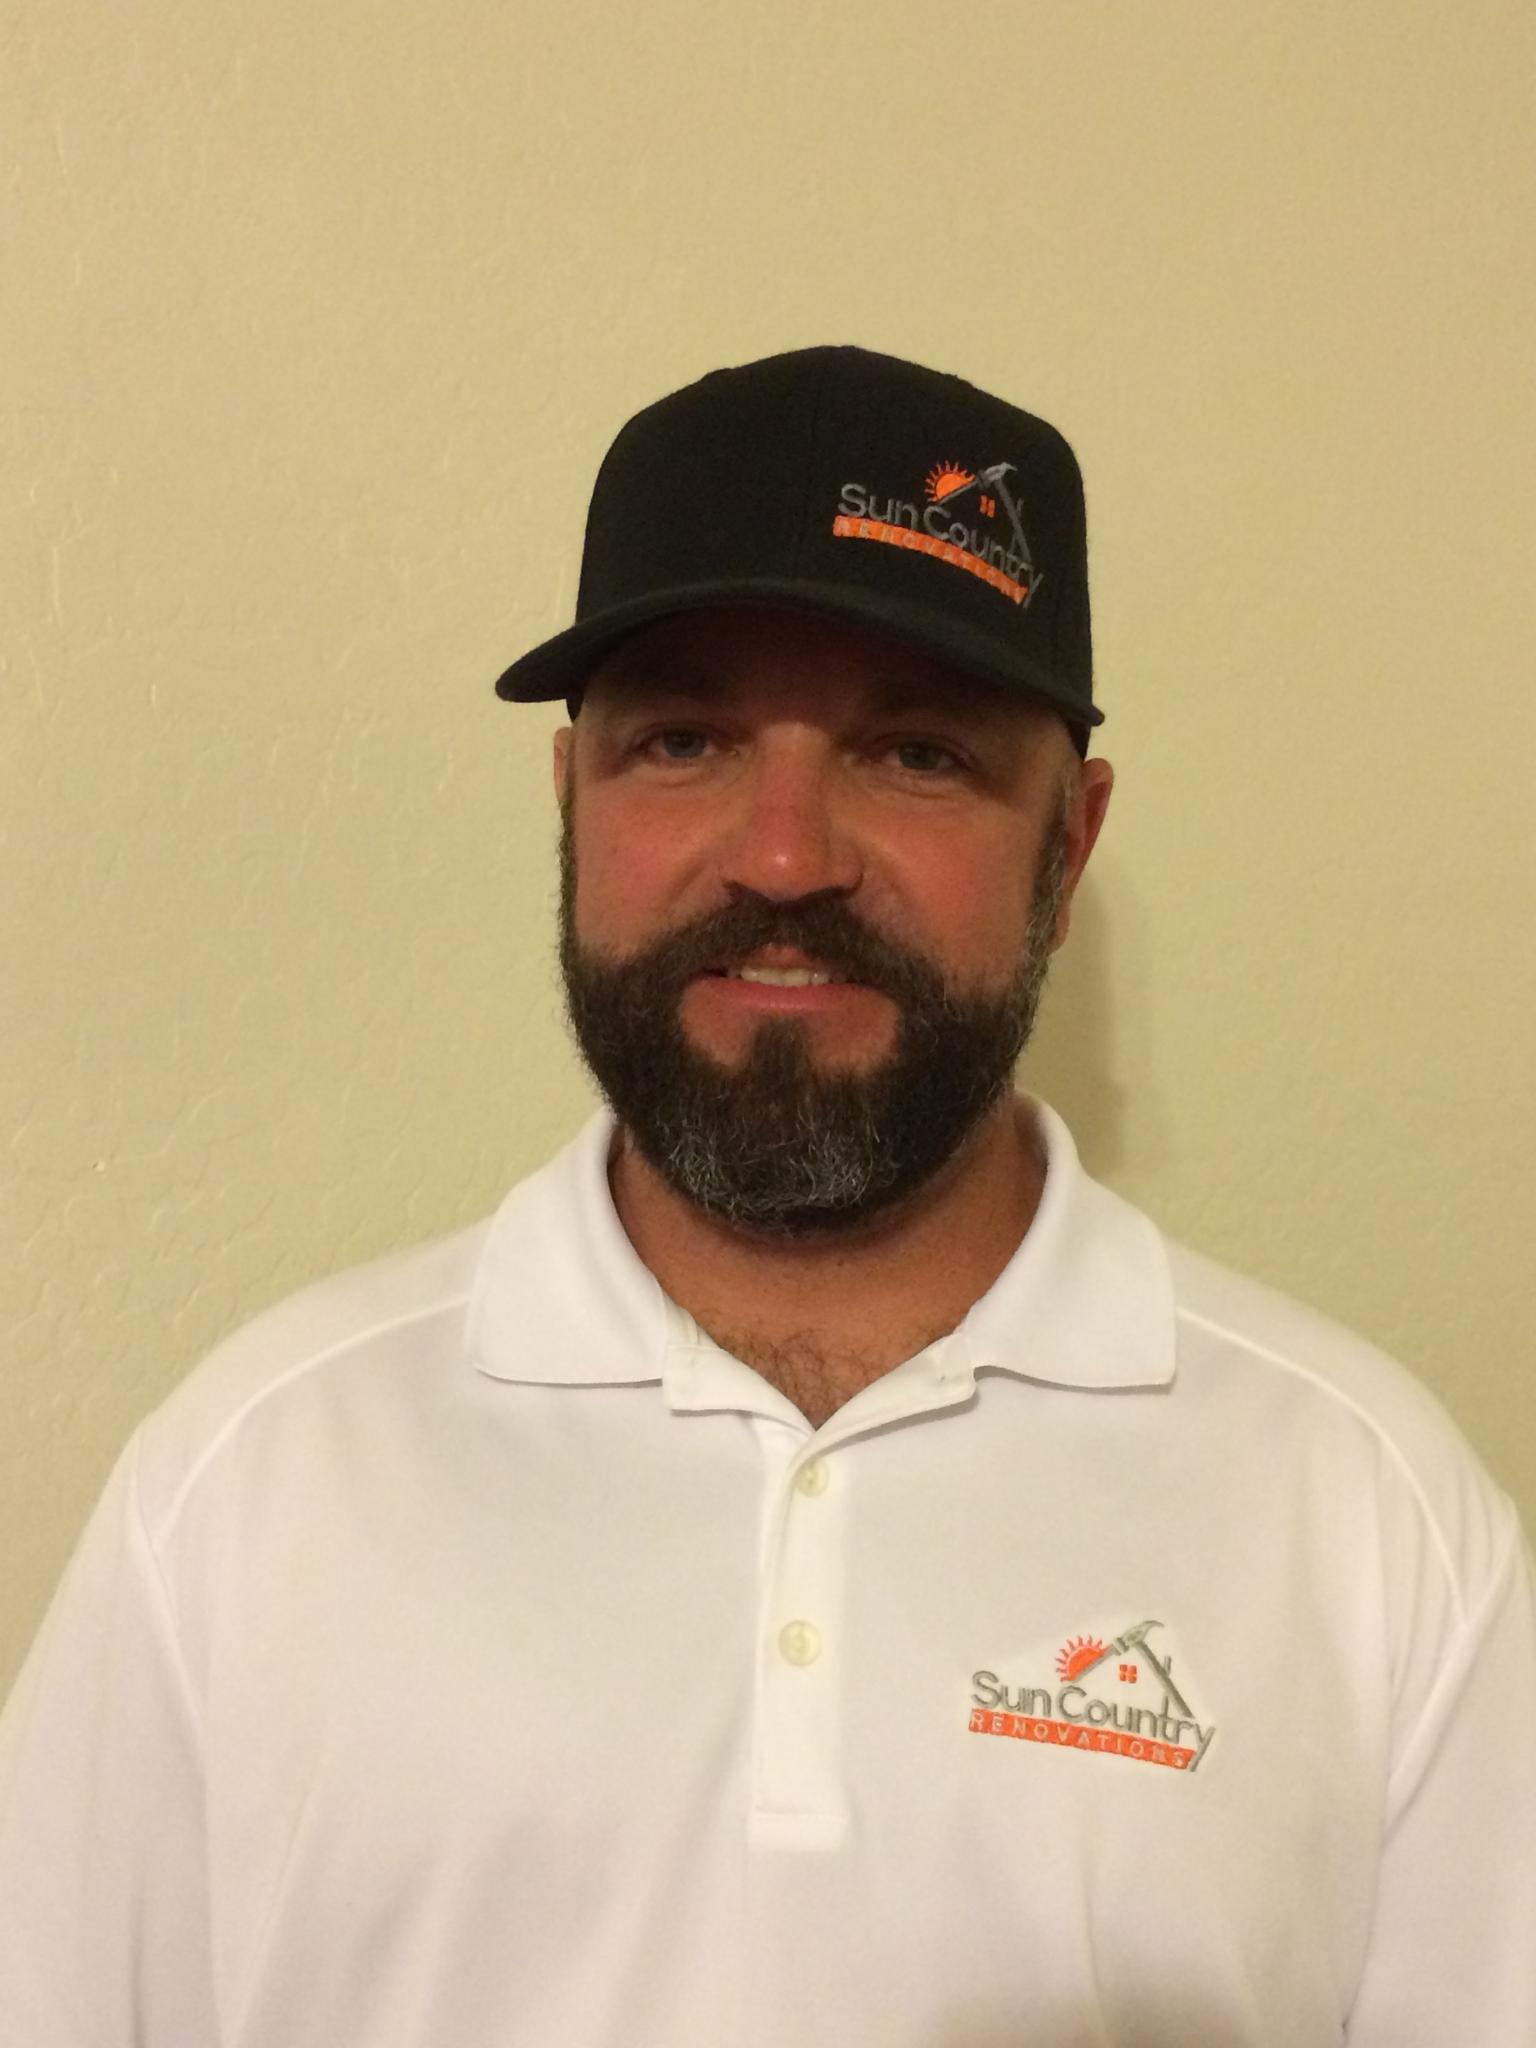 Willie Greenwood, Co-Founder of Sun Country Renovations